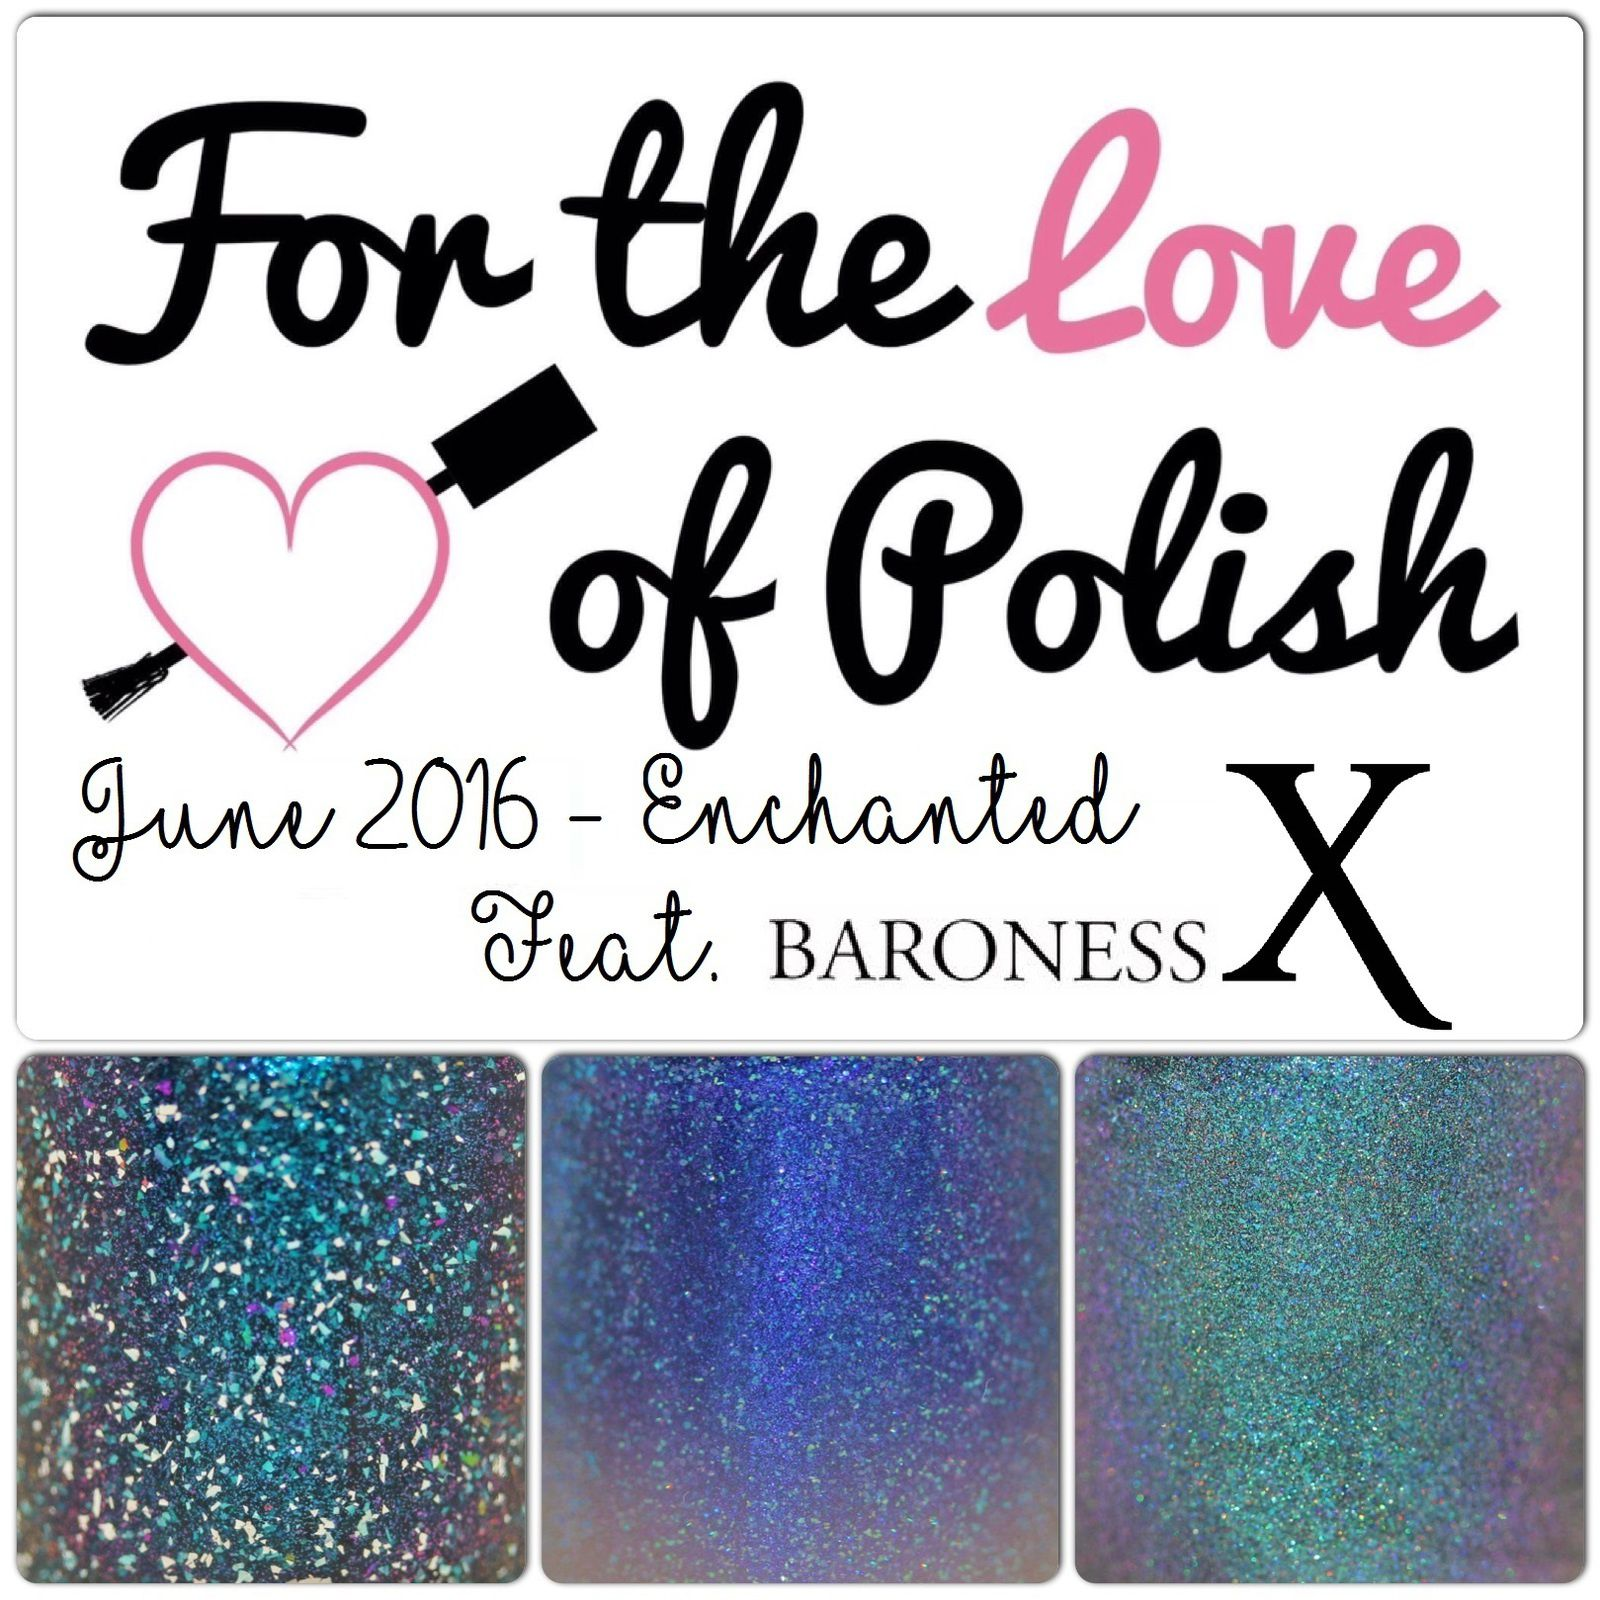 For The Love of Polish - June 2016 - Enchanted